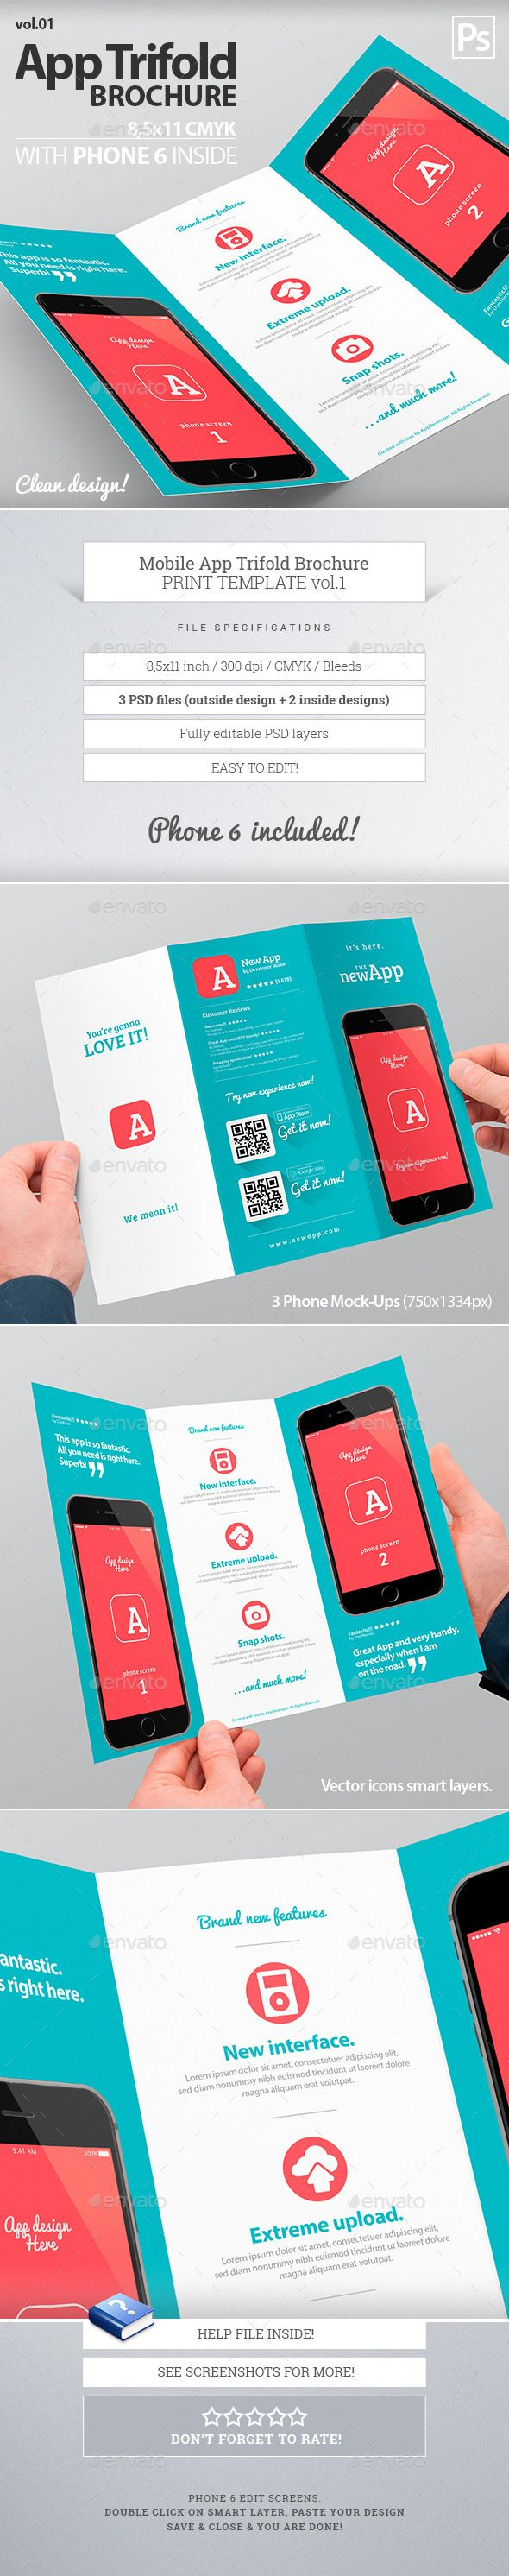 e1c65814005bfe16539a973b388d0f7b Template Application Android Studio on android master-detail flow, android interface, android home icon,